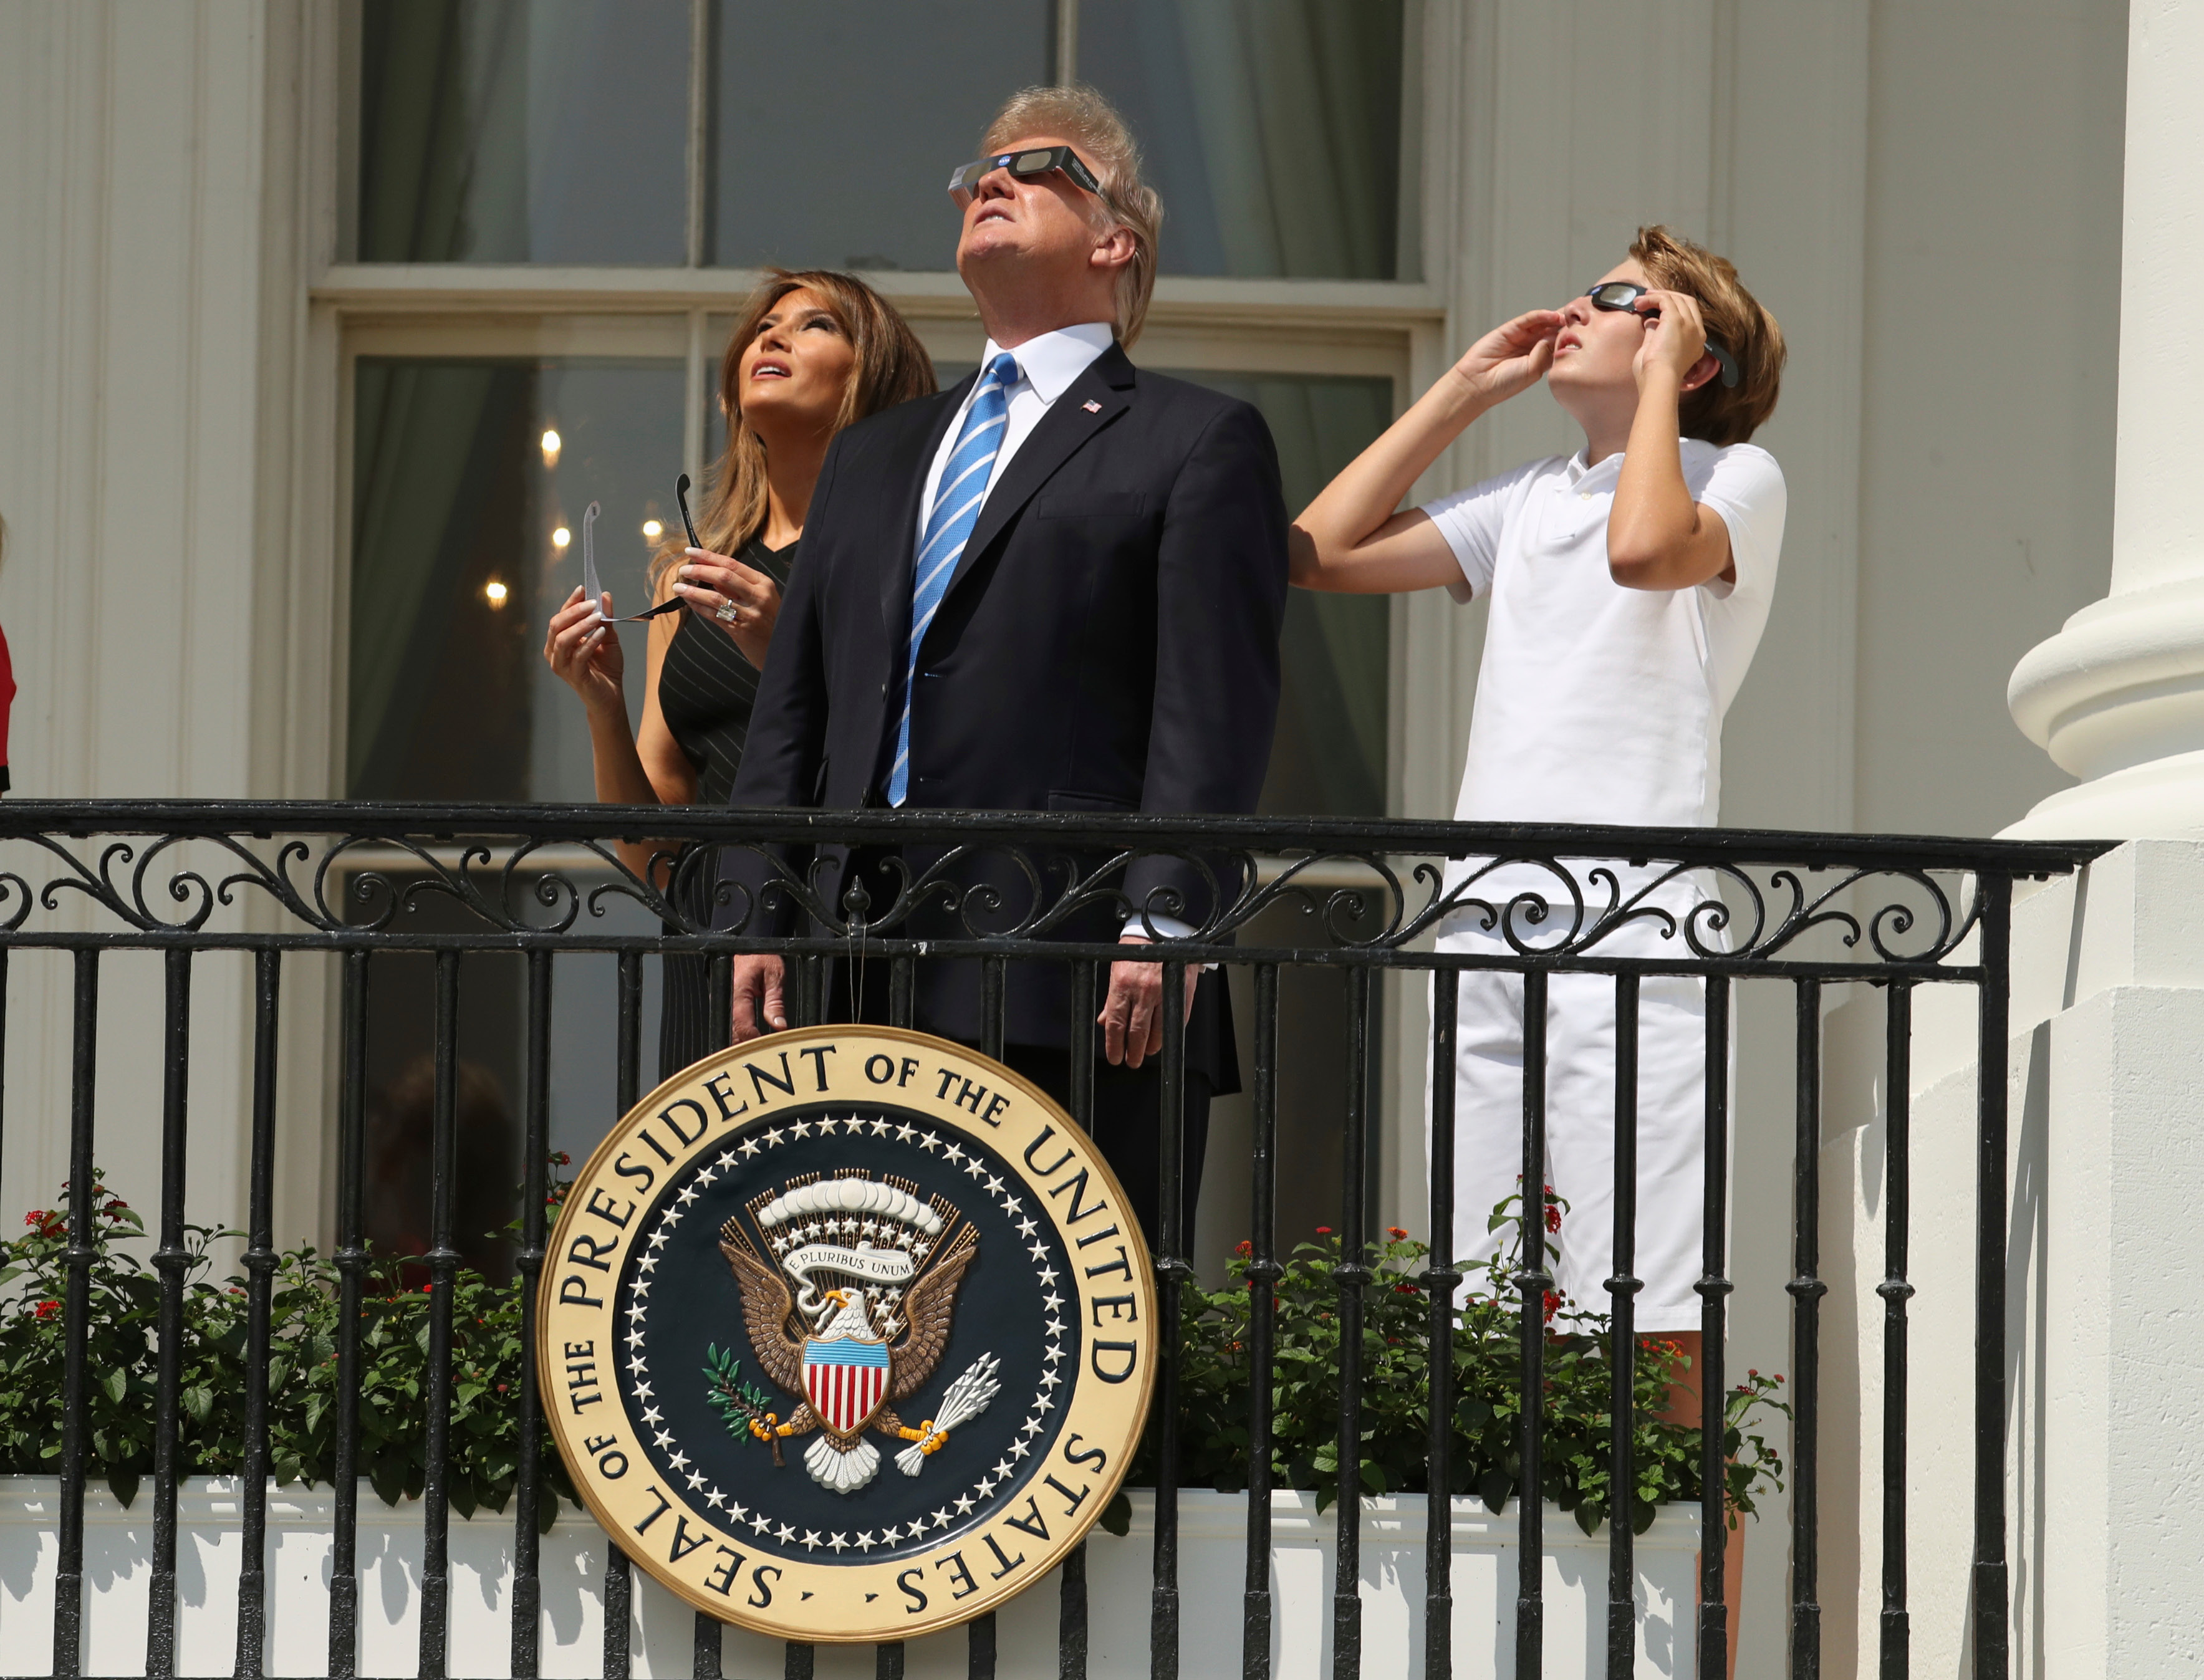 President Donald Trump, first lady Melania Trump and their son Barron watch the solar eclipse, Monday, Aug. 21, 2017, at the White House in Washington.  (AP Andrew Harnik)